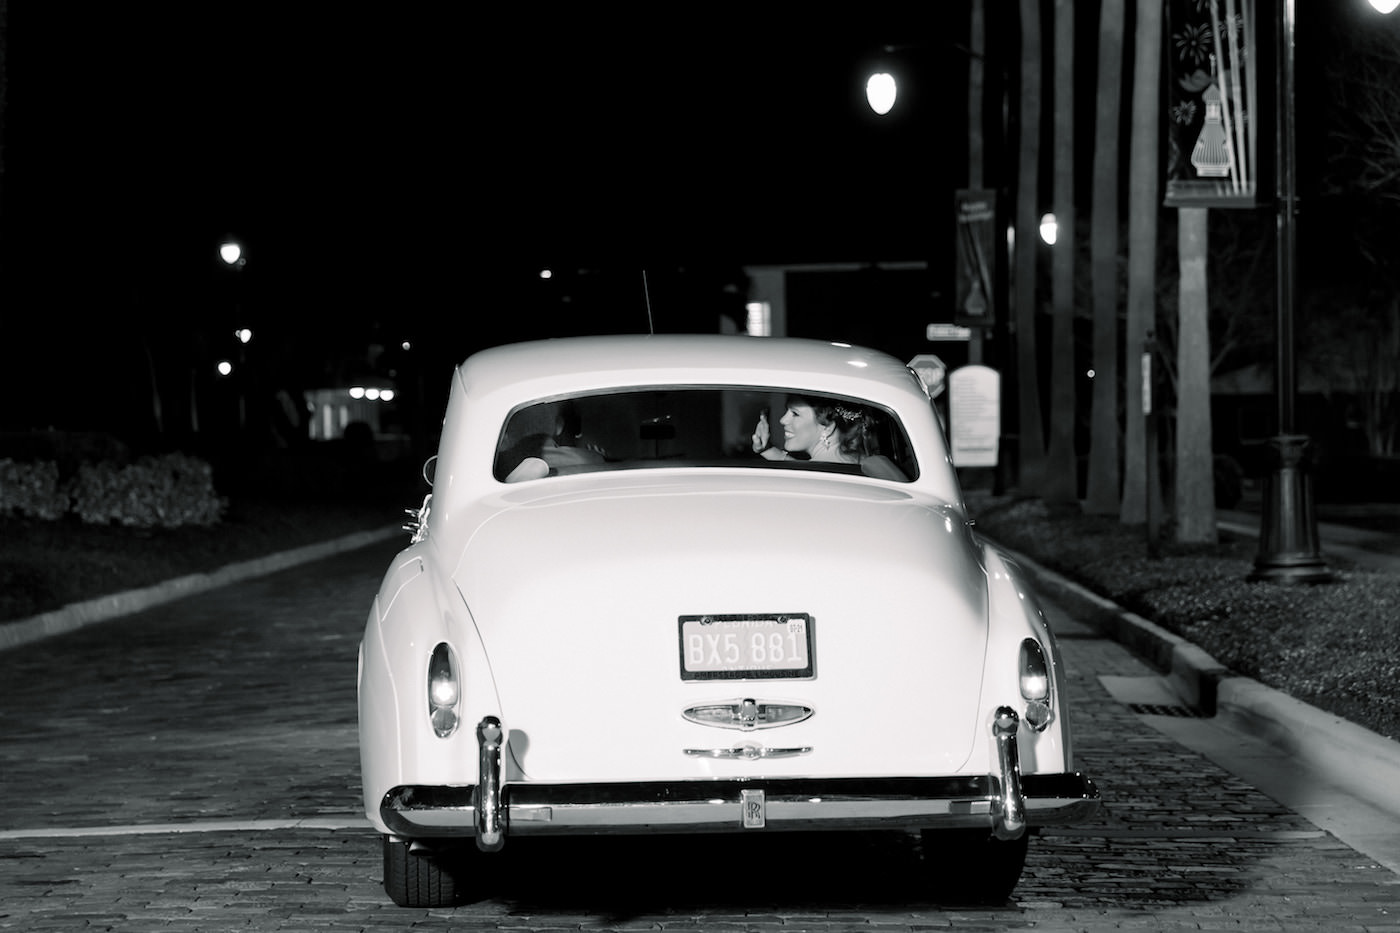 Tampa Bride and Groom in White Vintage Getaway Car | Wedding Photographer Shauna and Jordon Photography